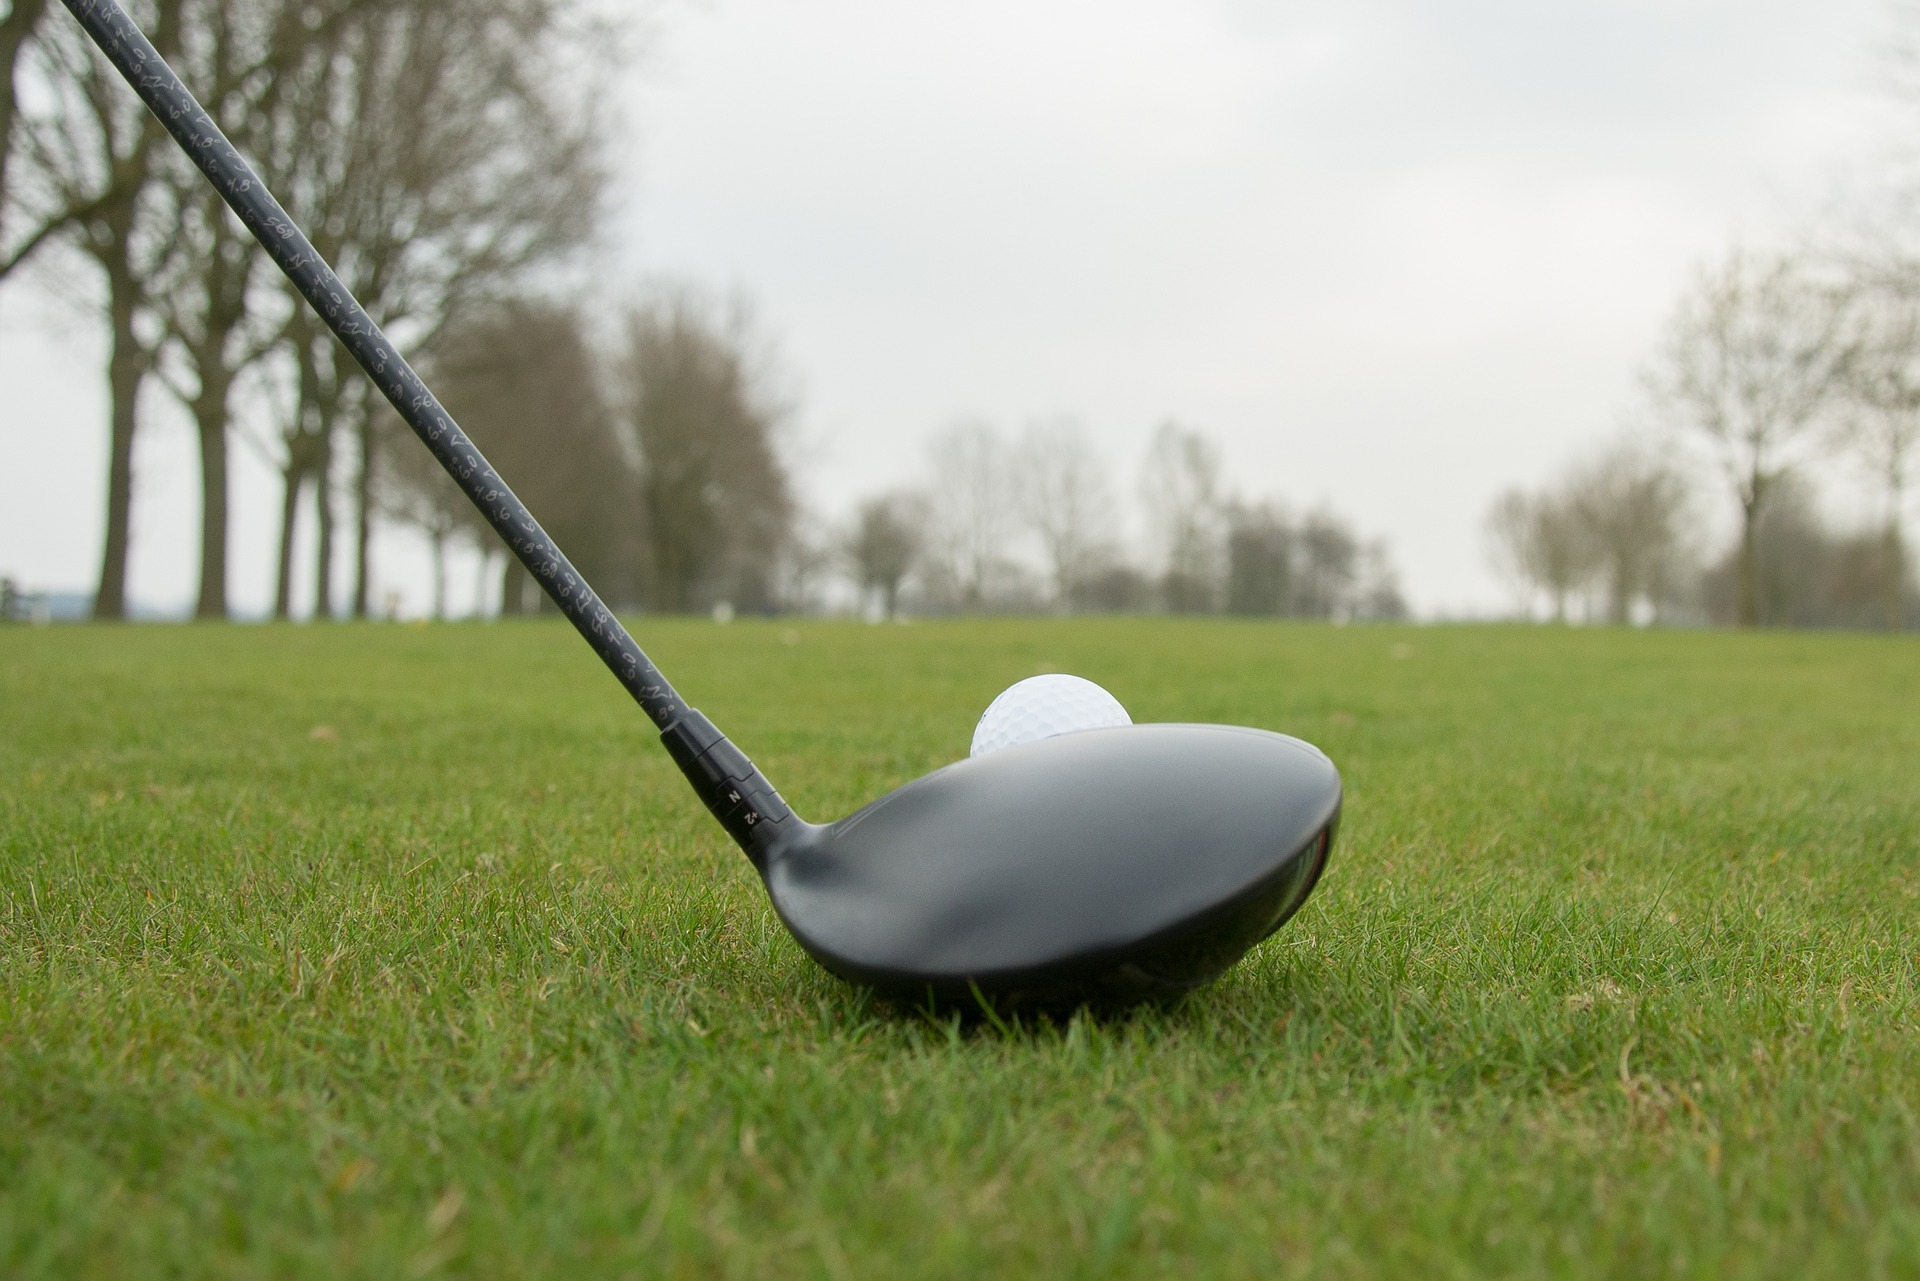 golfing tips to stay safe on the course